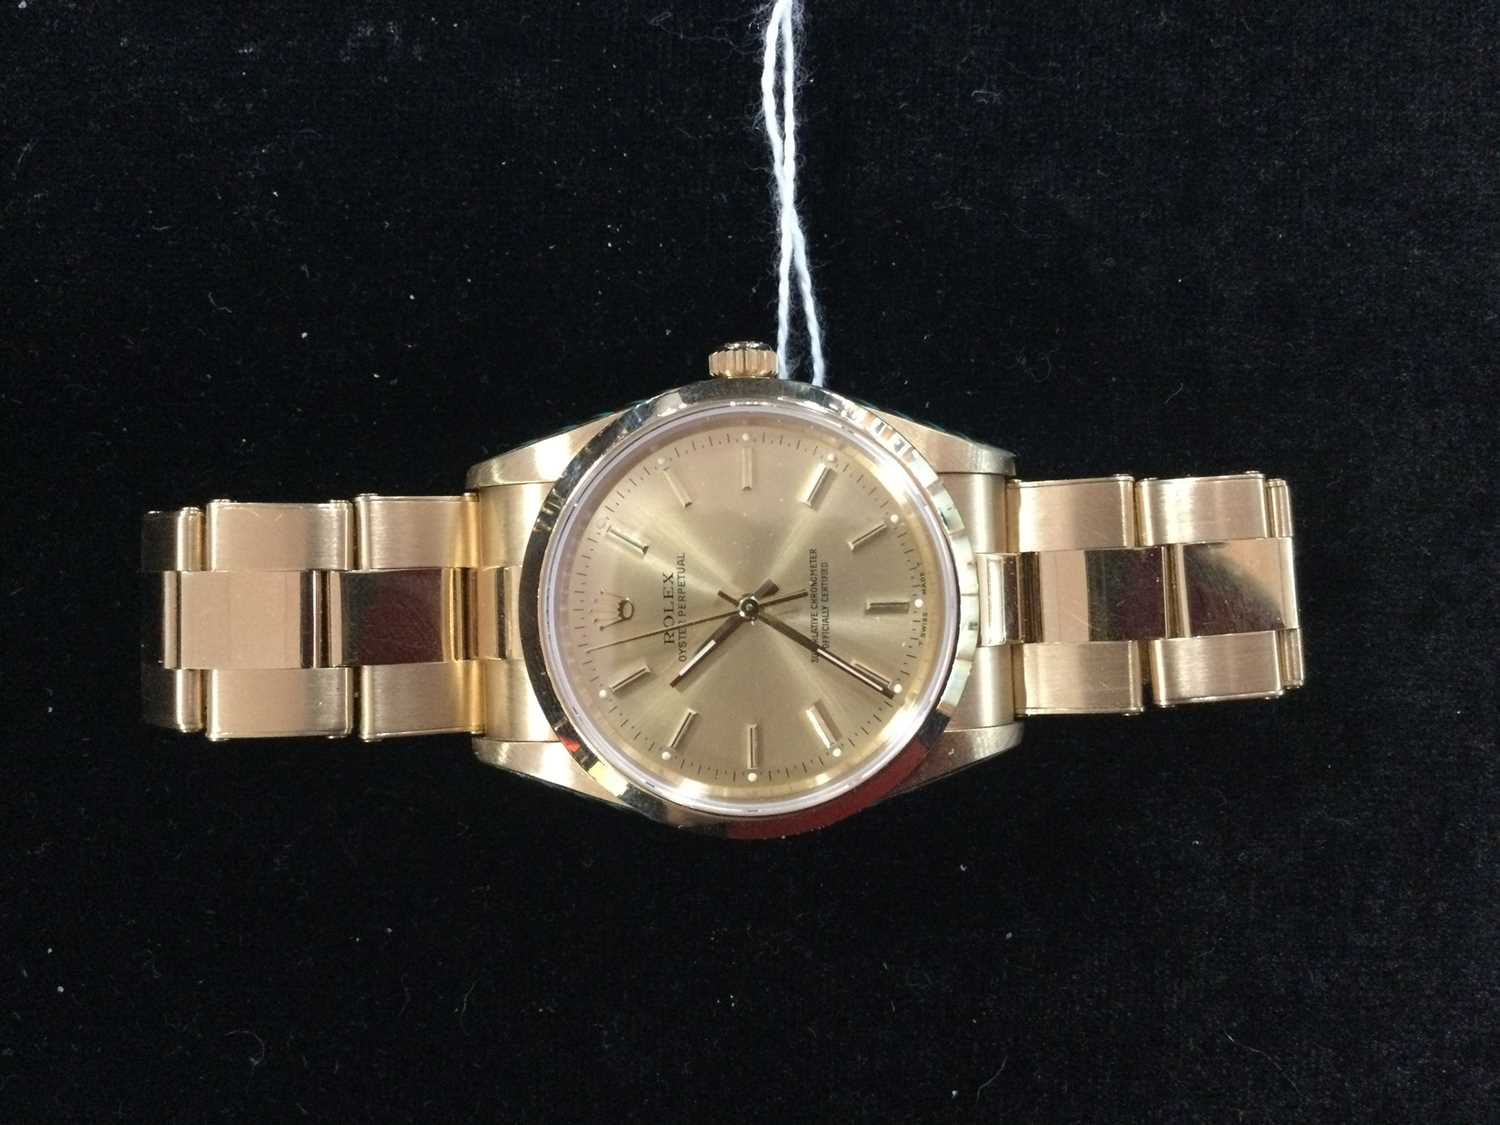 A GENTLEMAN'S ROLEX OYSTER PERPETUAL EIGHTEEN CARAT GOLD AUTOMATIC WRIST WATCH - Image 8 of 9